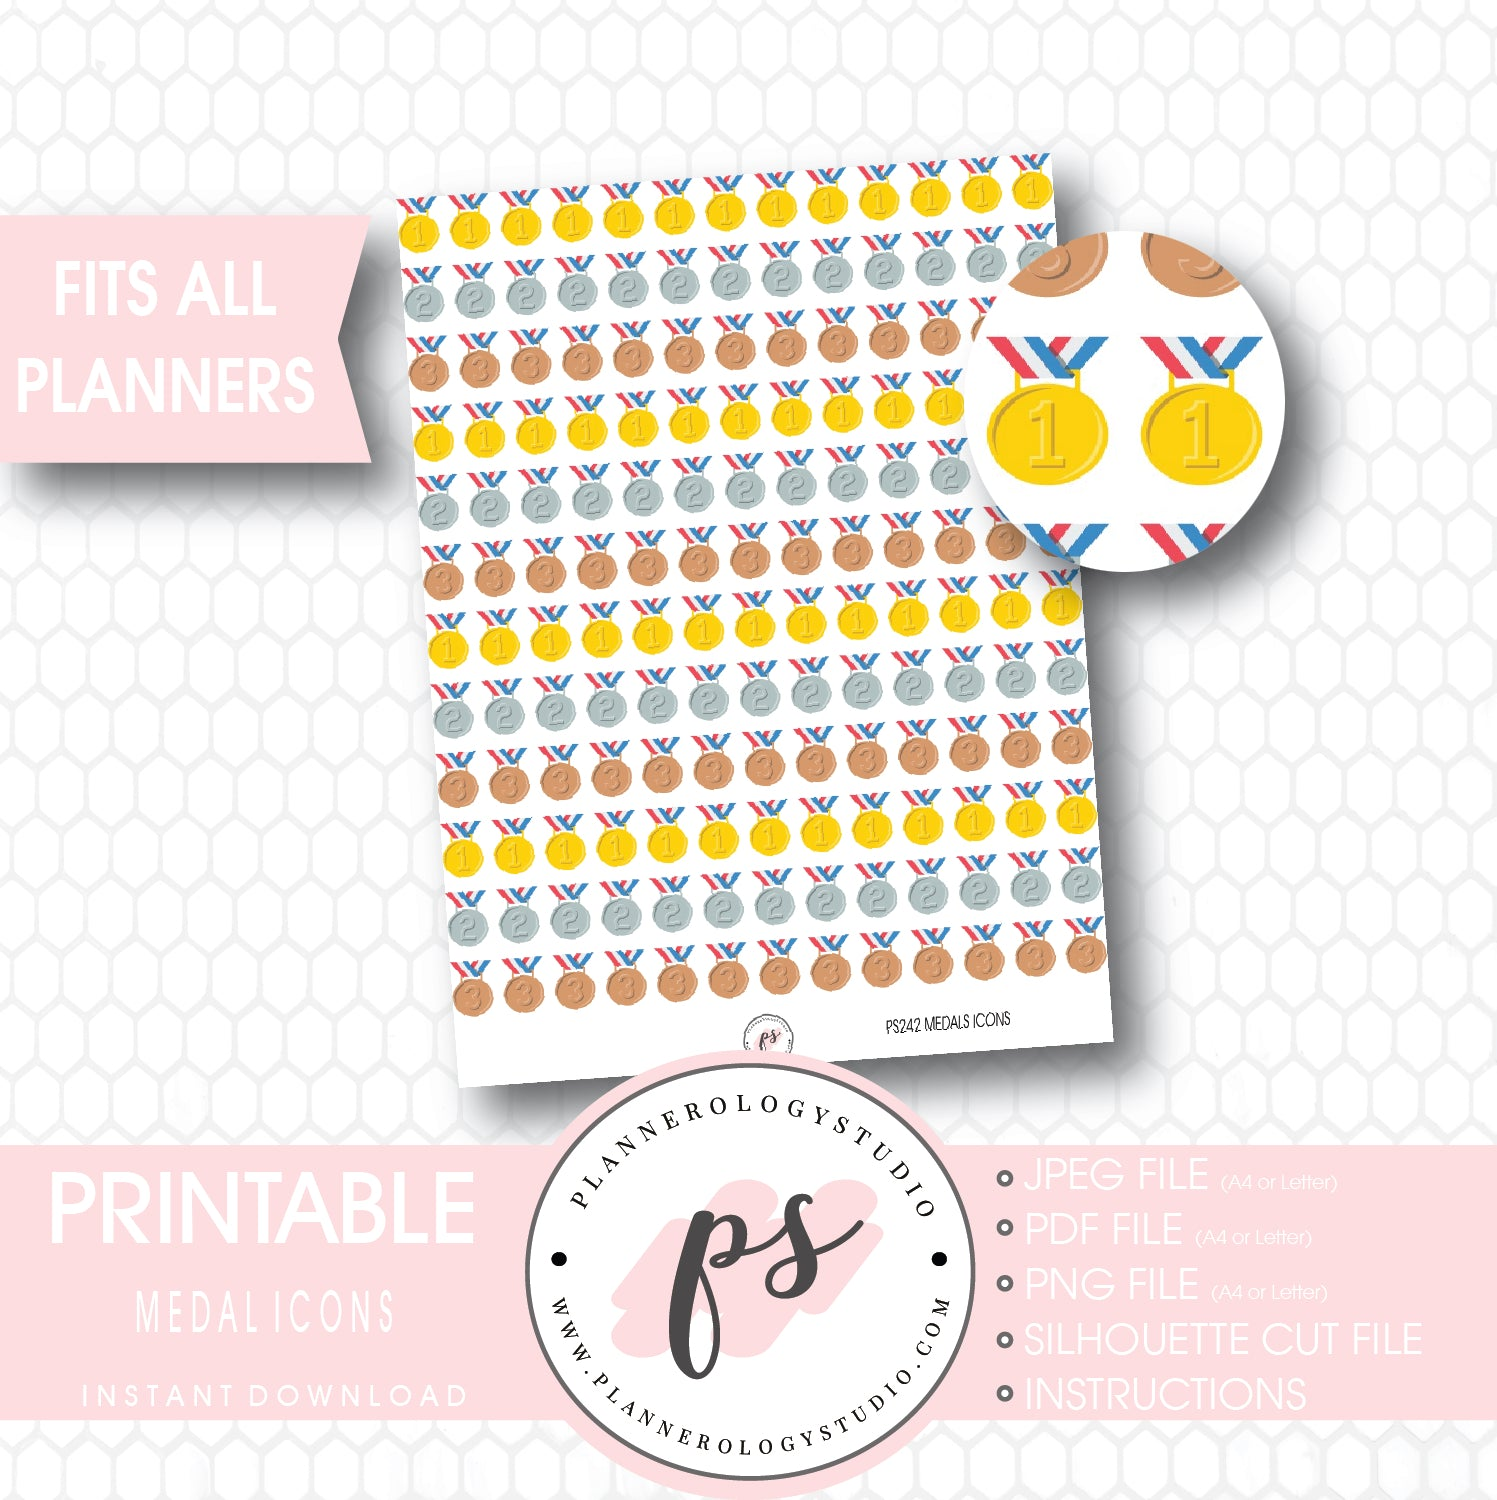 photo about Printable Medals named Medals (Gold, Silver Bronze) Icons Printable Planner Stickers